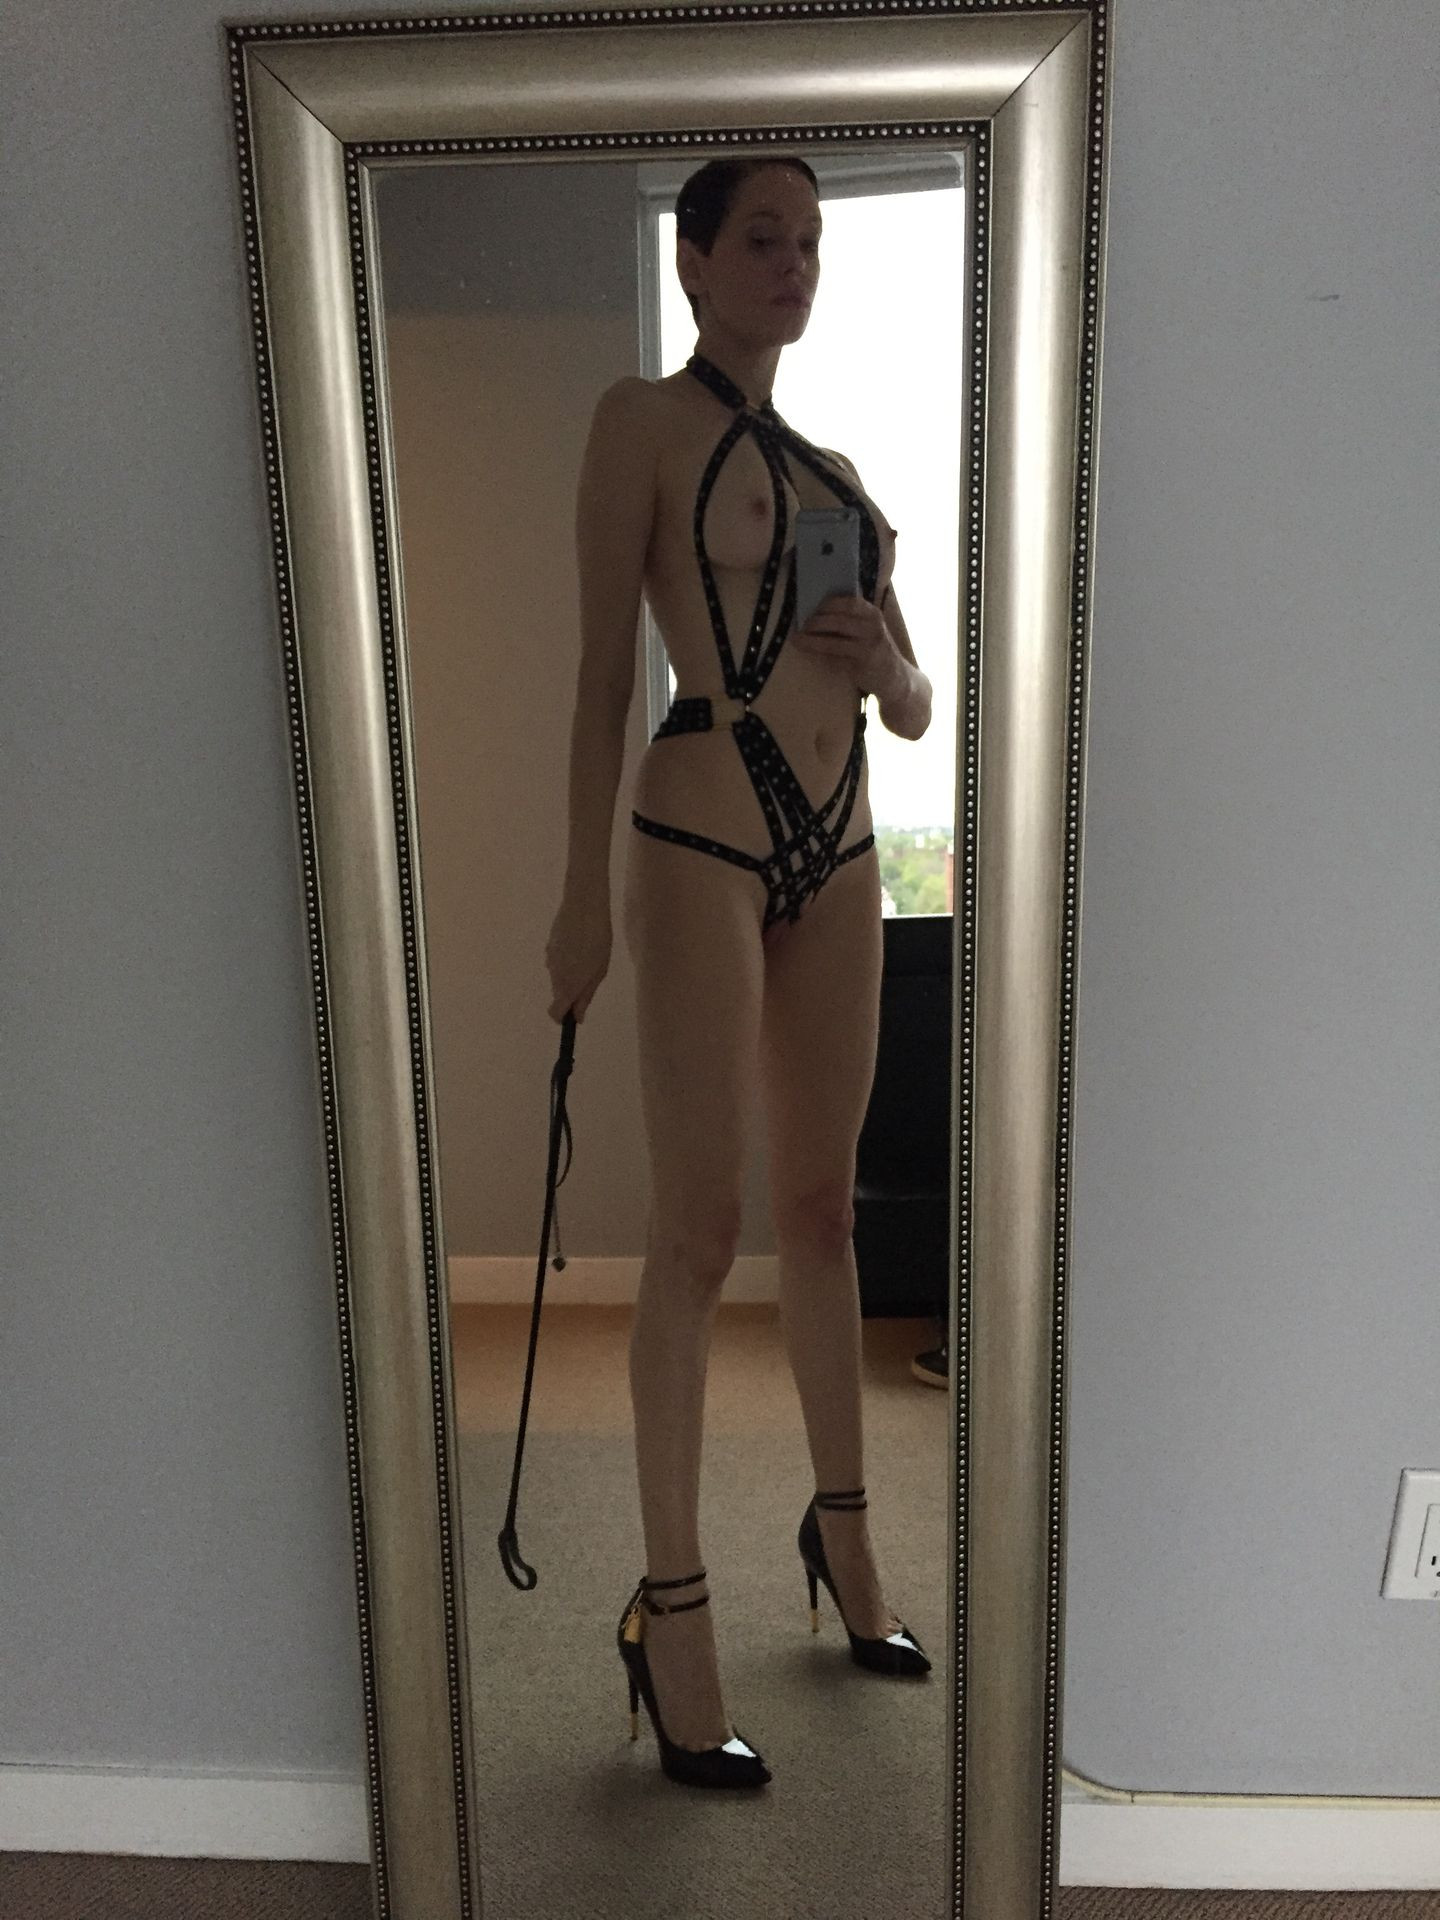 Rose McGowan Nude Leaked thefappening.nu 11